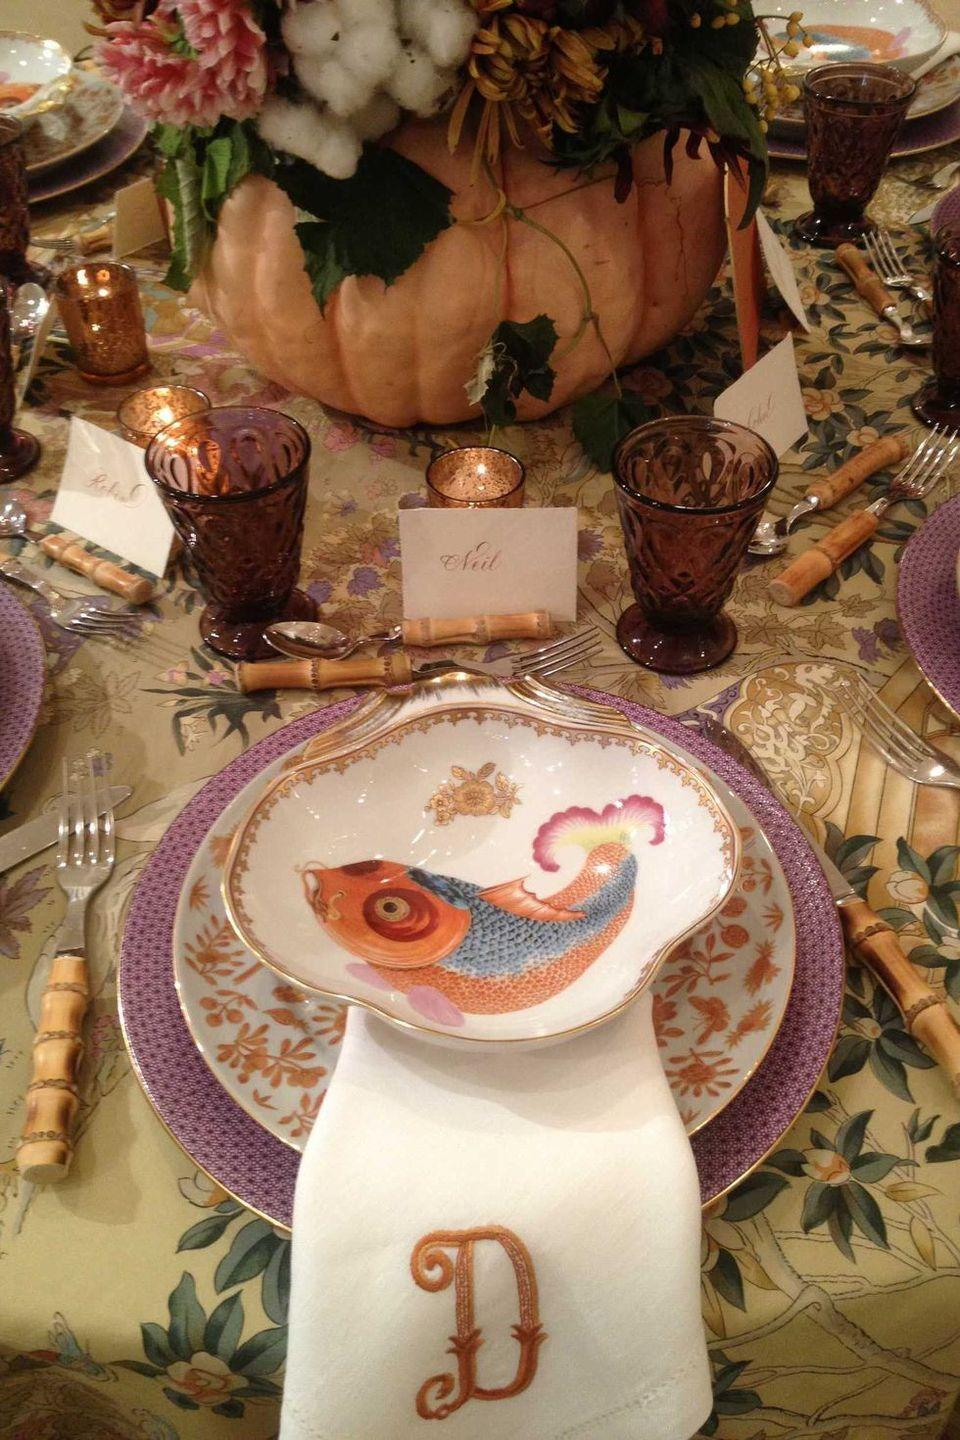 """<p>A tablecloth adorned in a floral motif is an easy way to add a sophisticated touch to a fall table arrangement. Add elegant place cards and monogrammed cloth napkins to make it feel even more special. Design by <a href=""""https://danielledrollins.com/"""" rel=""""nofollow noopener"""" target=""""_blank"""" data-ylk=""""slk:Danielle Rollins"""" class=""""link rapid-noclick-resp"""">Danielle Rollins</a>. </p>"""